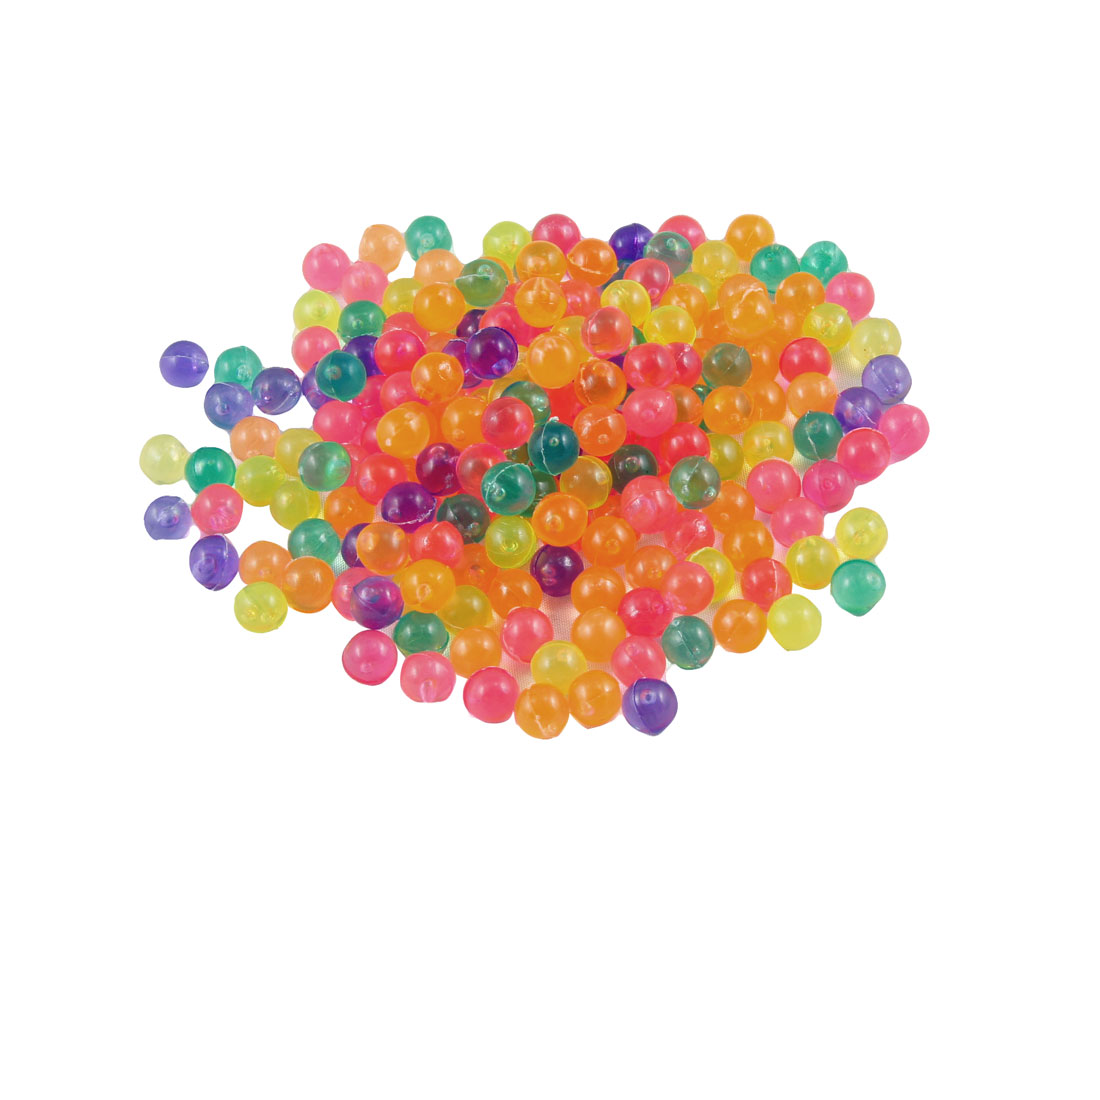 Aquarium Fish Tank Assorted Color Plastic Beads Ornament 200 Pcs